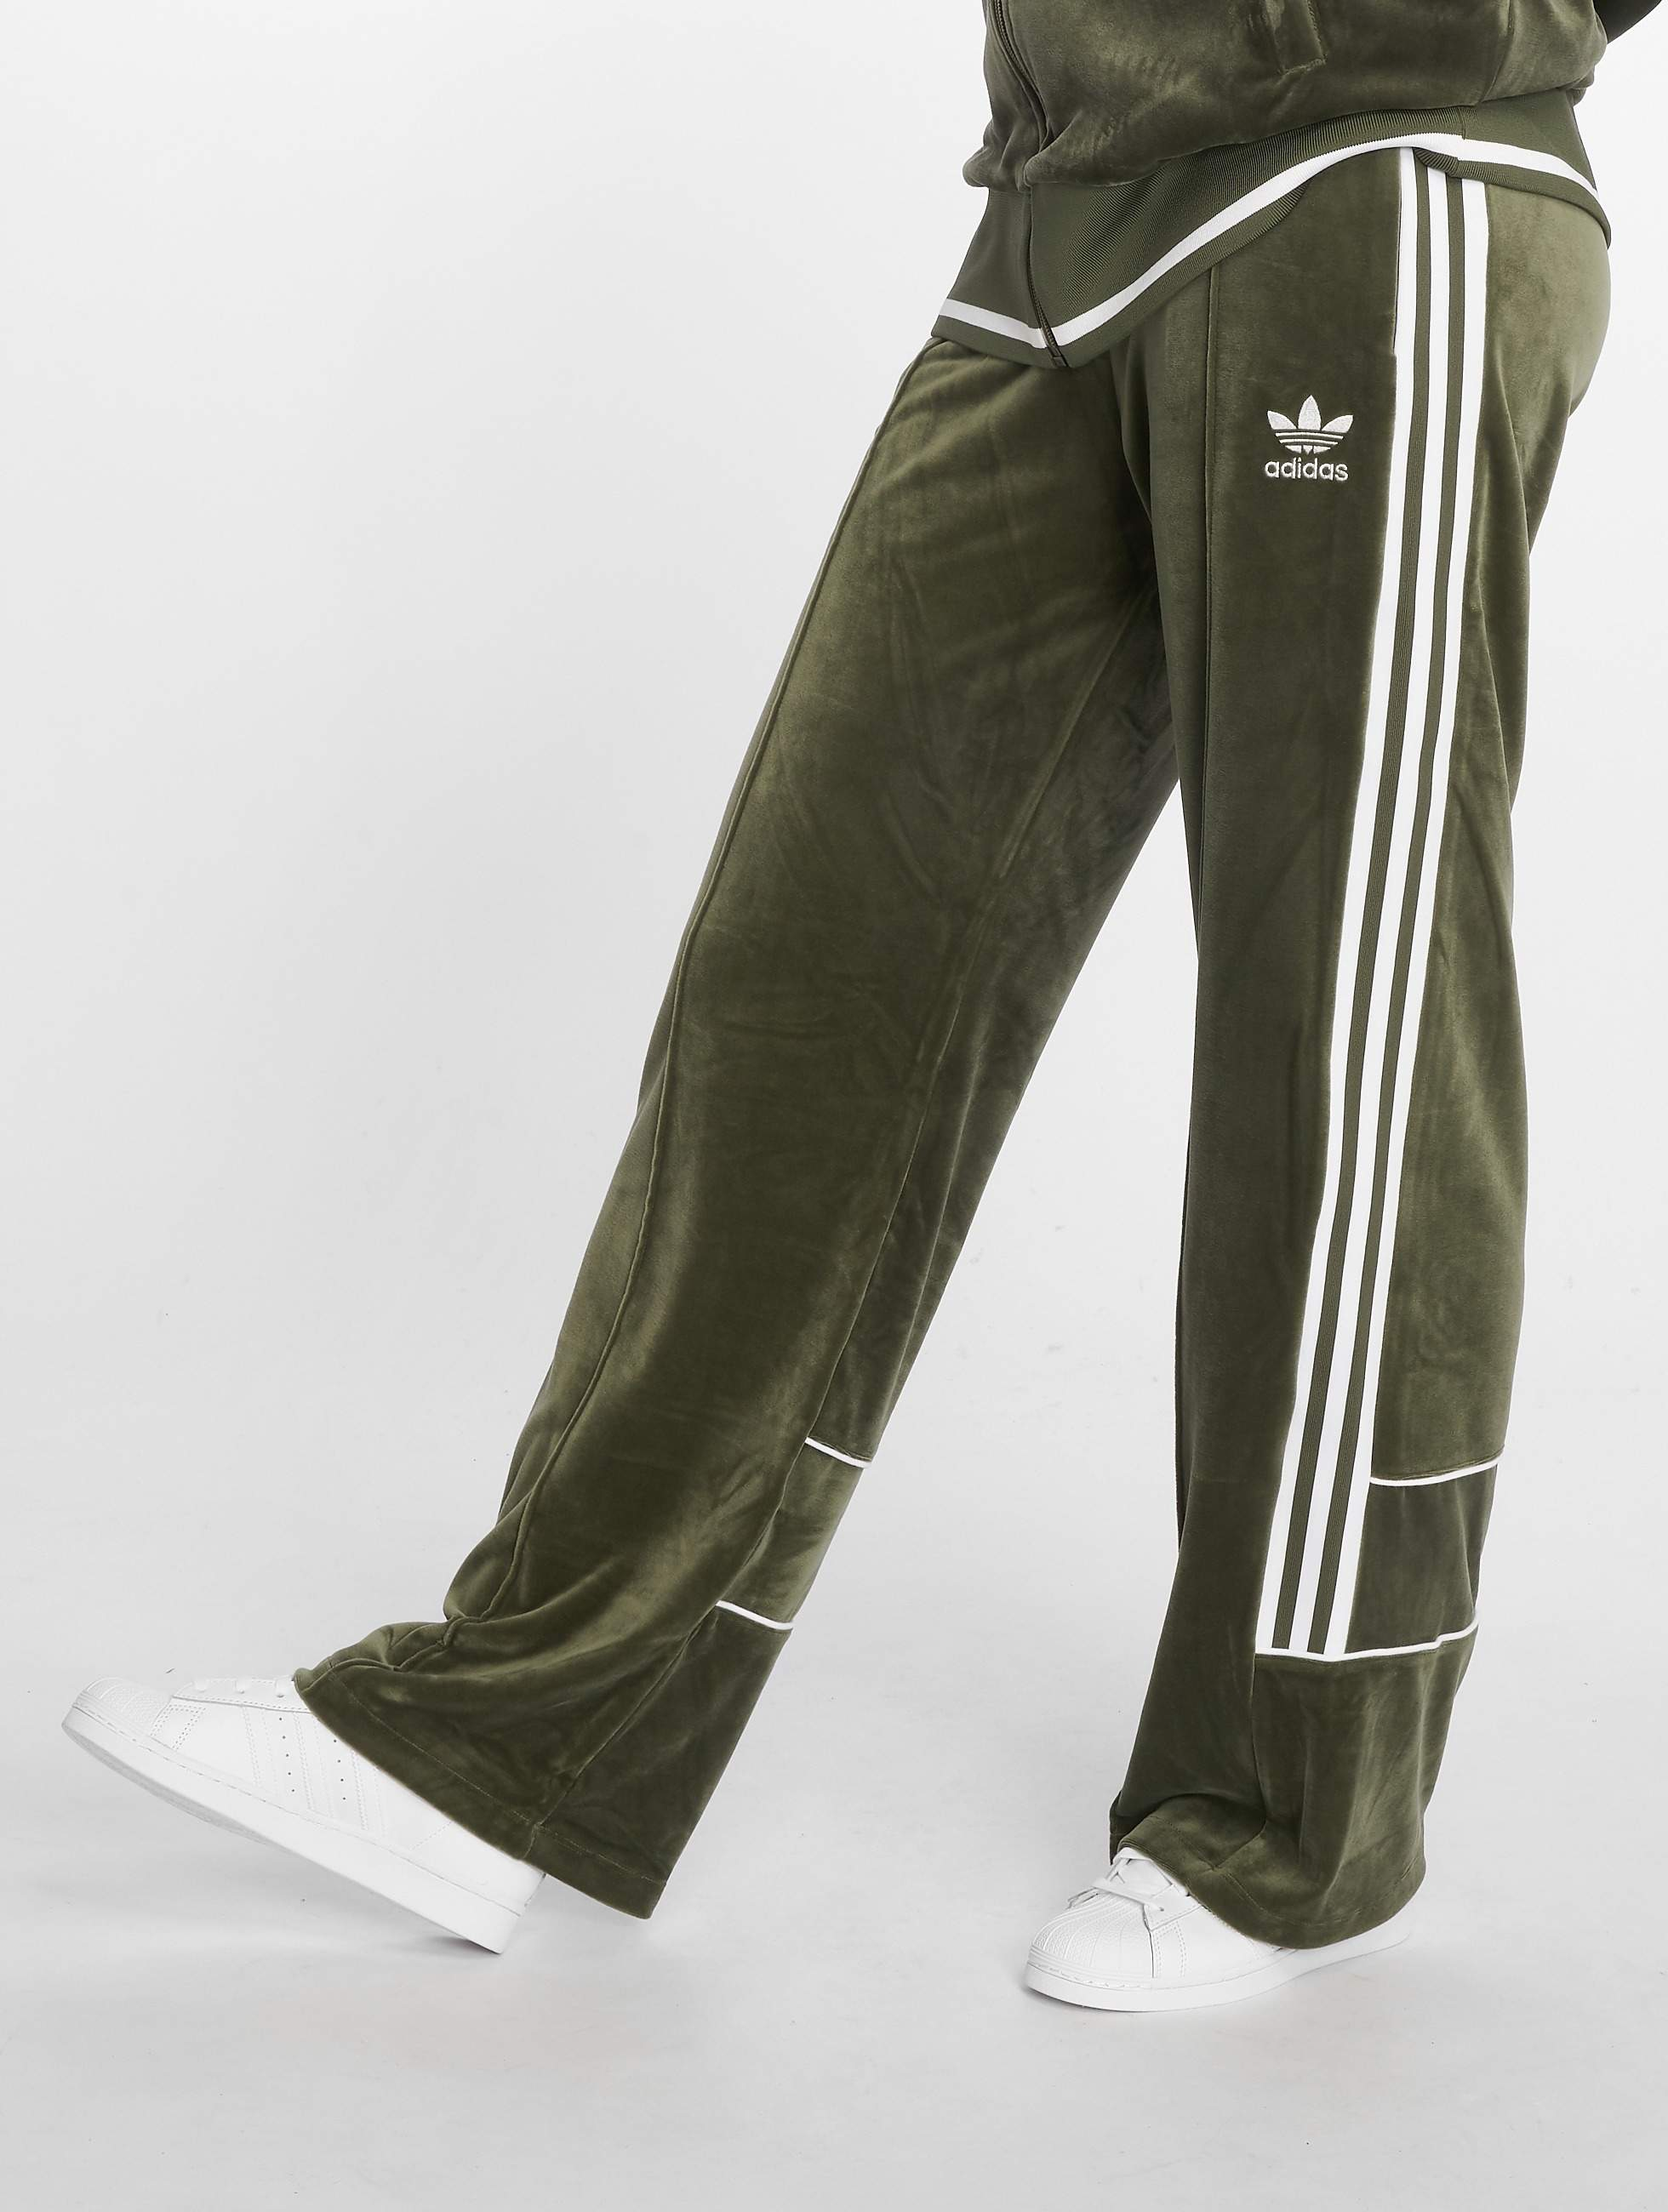 In Adidas Grün Damen 499491 Originals Jogginghose Track 0wX8nOPk